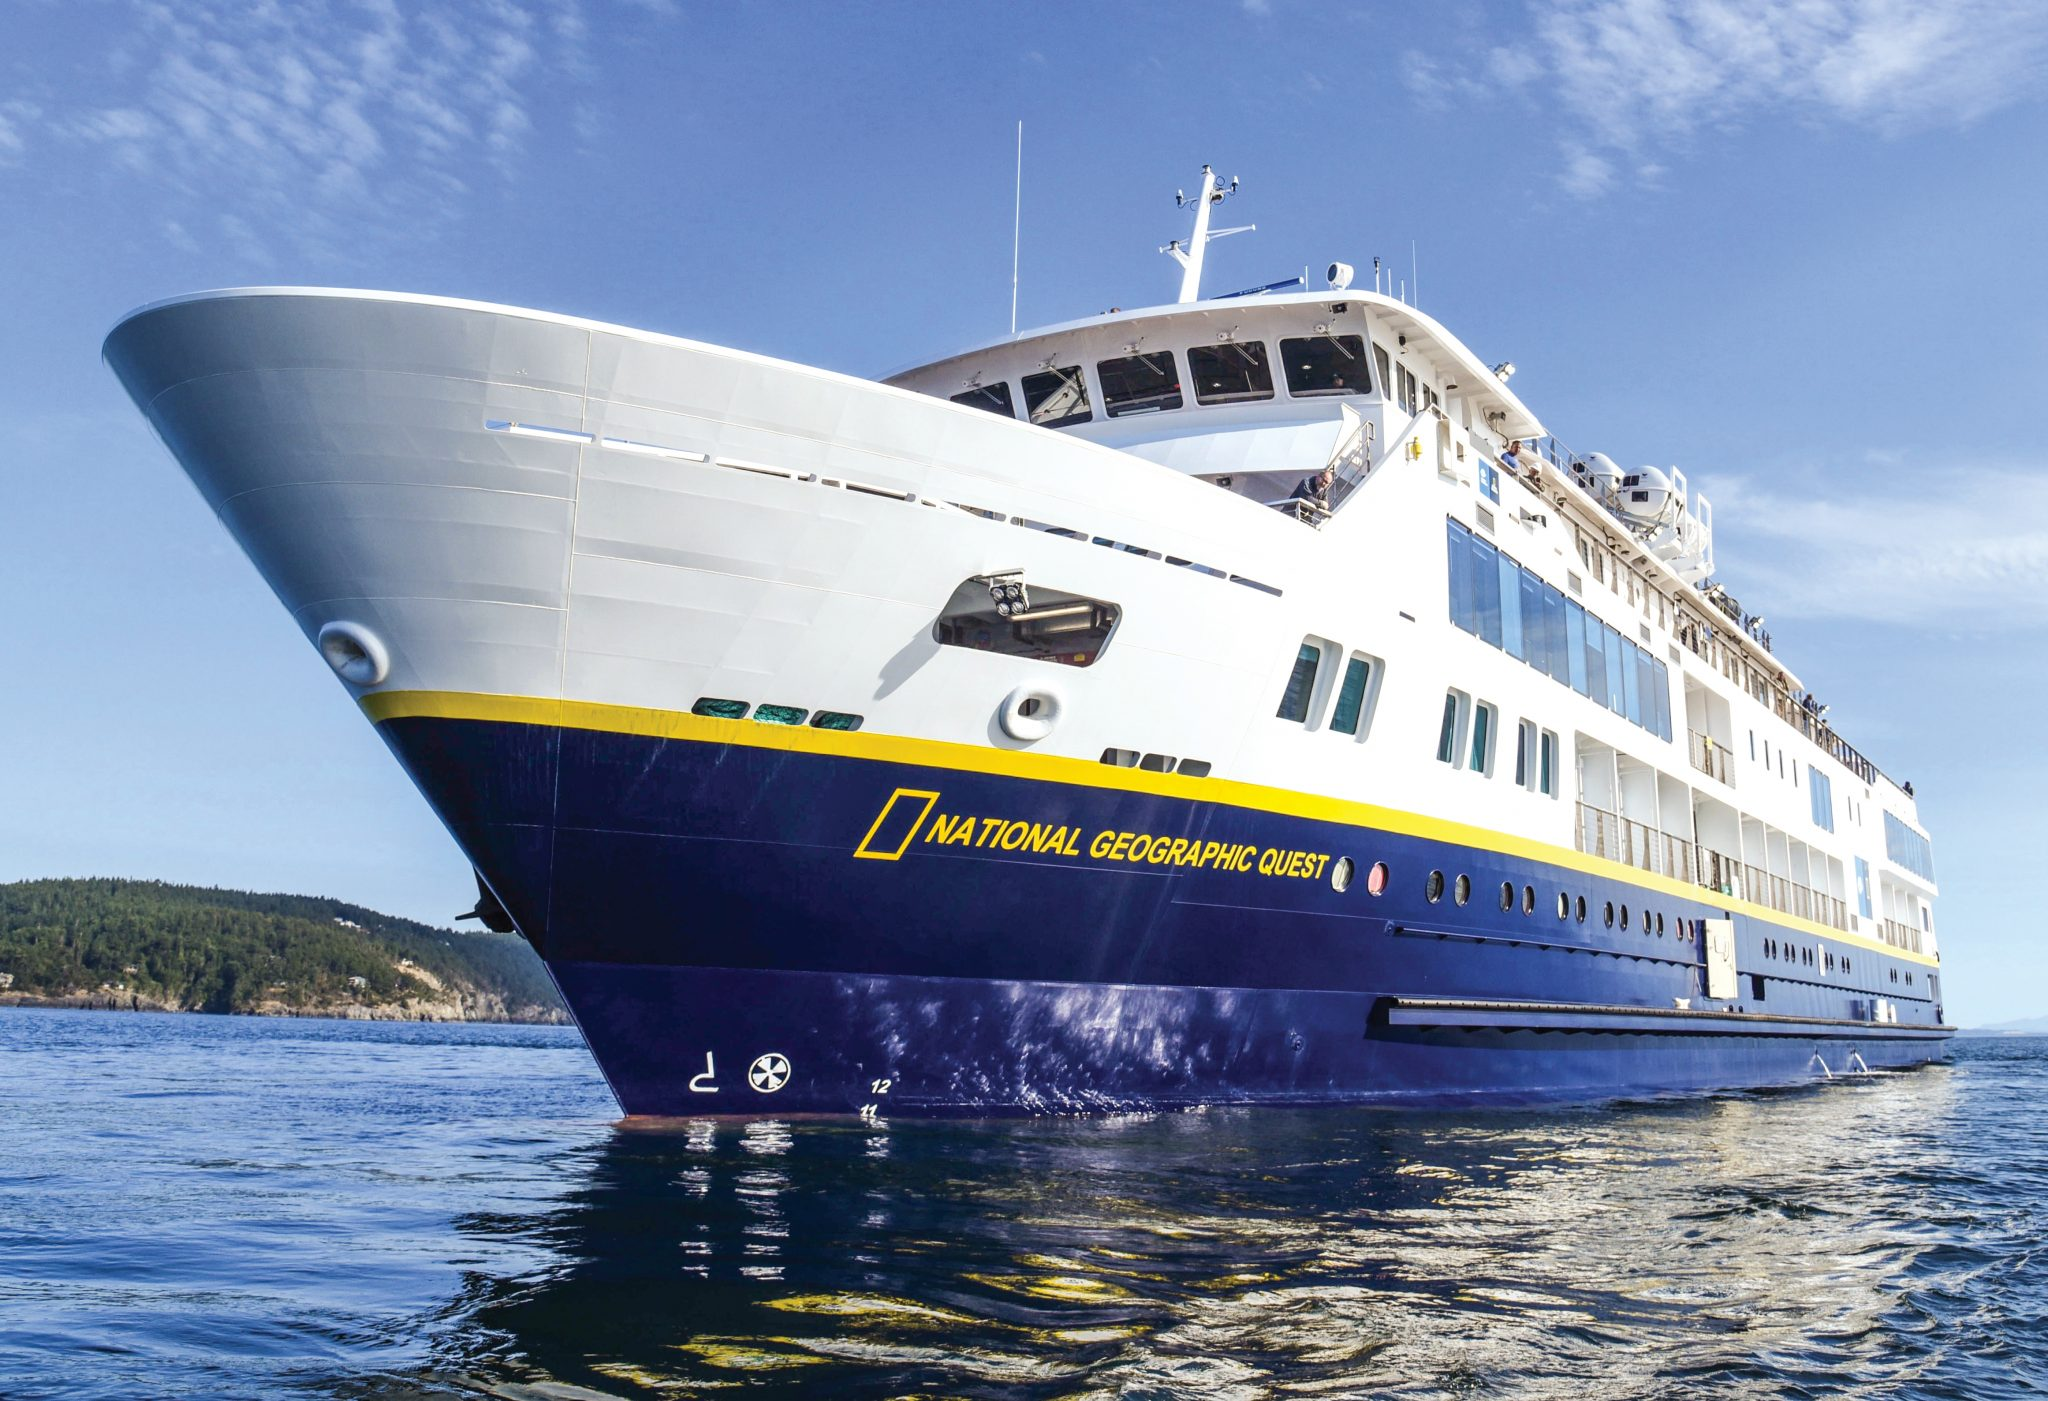 National-Geographic-Quest-Lindblad